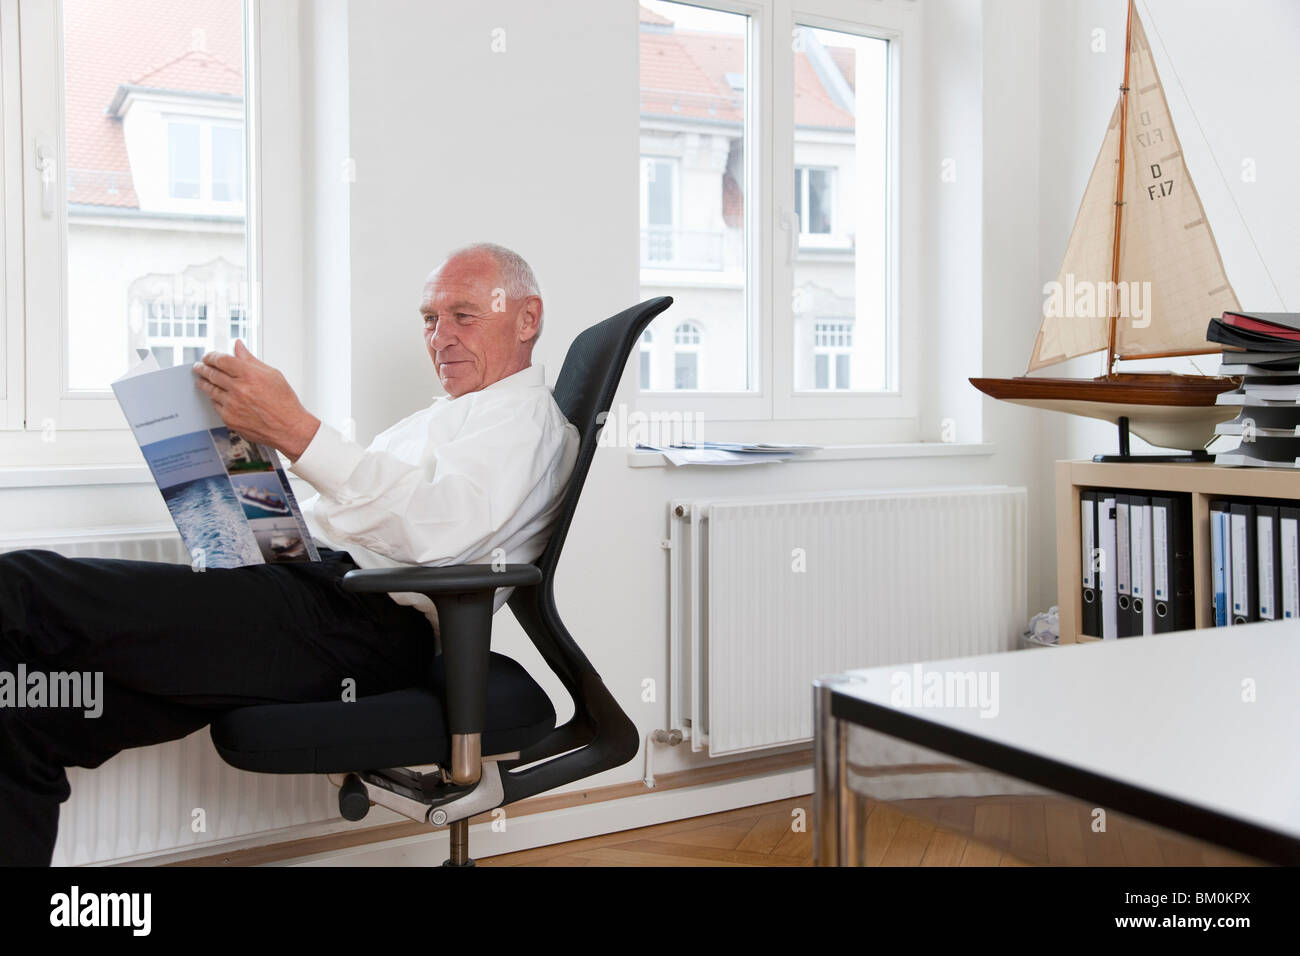 Businessman reading brochure Photo Stock